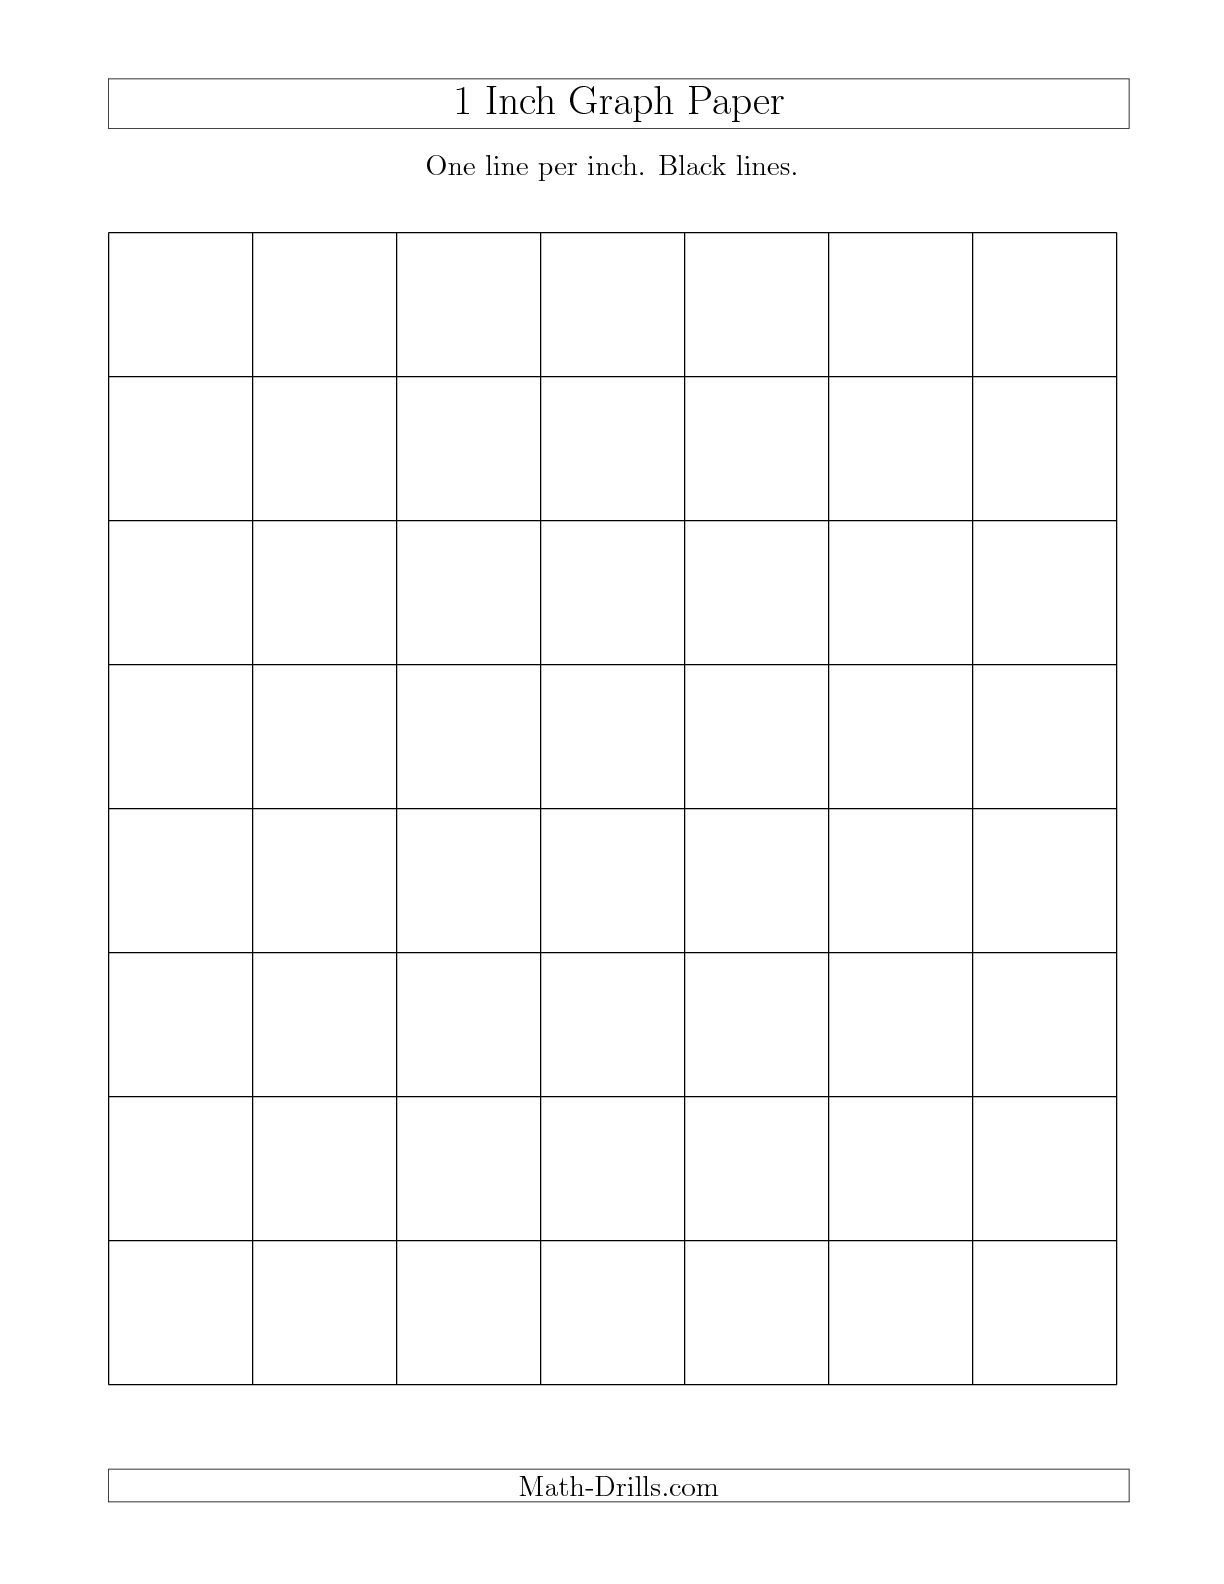 The 1 Inch Graph Paper With Black Lines A Graph Paper